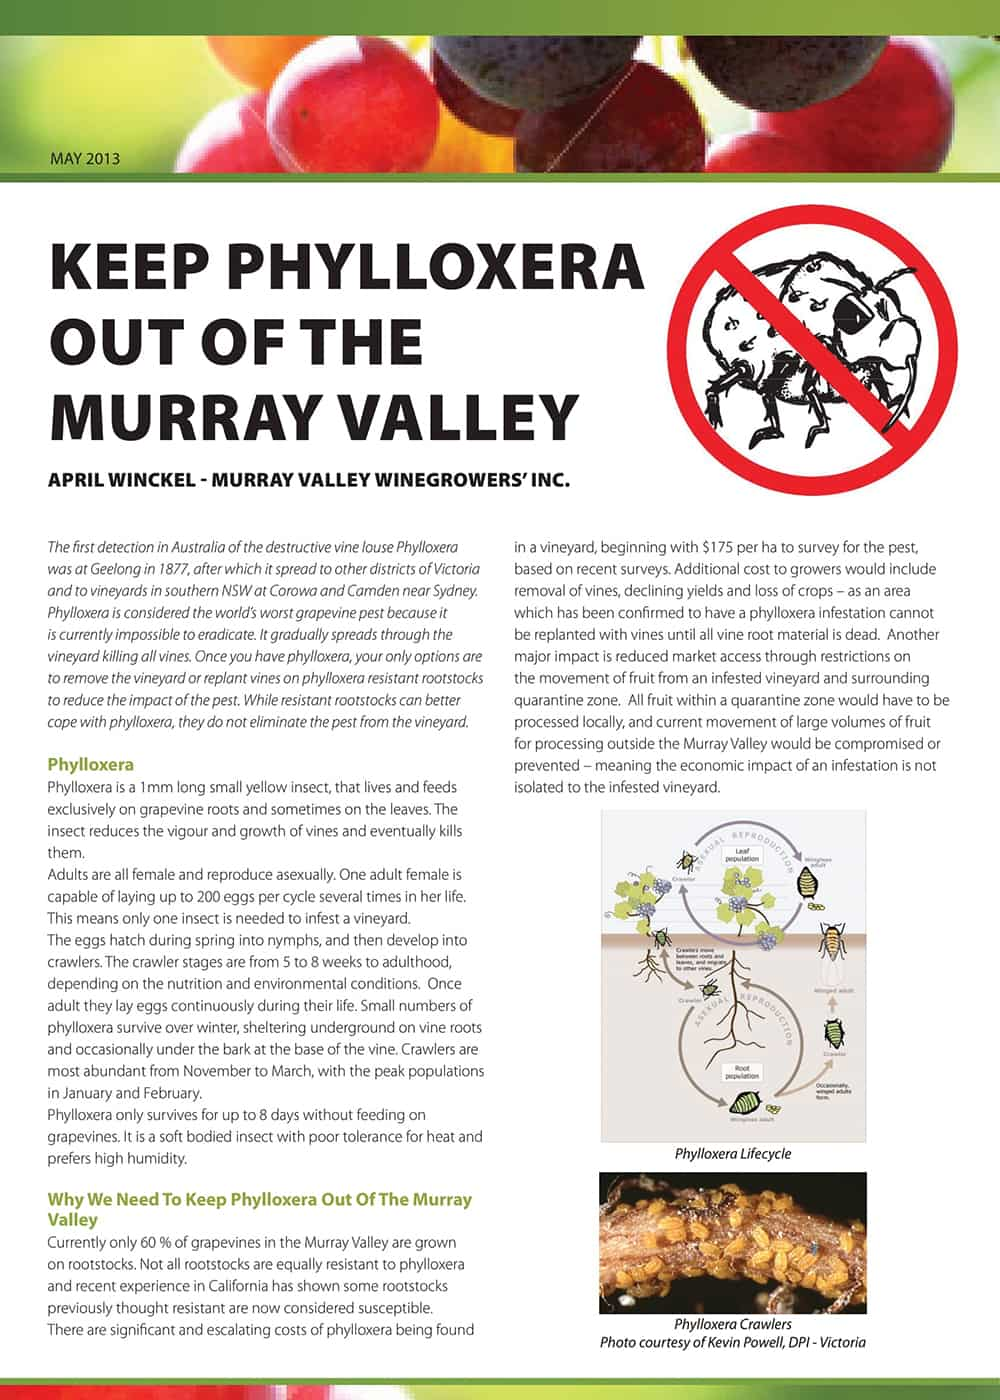 Keep Phylloxera out of the Murray Valley